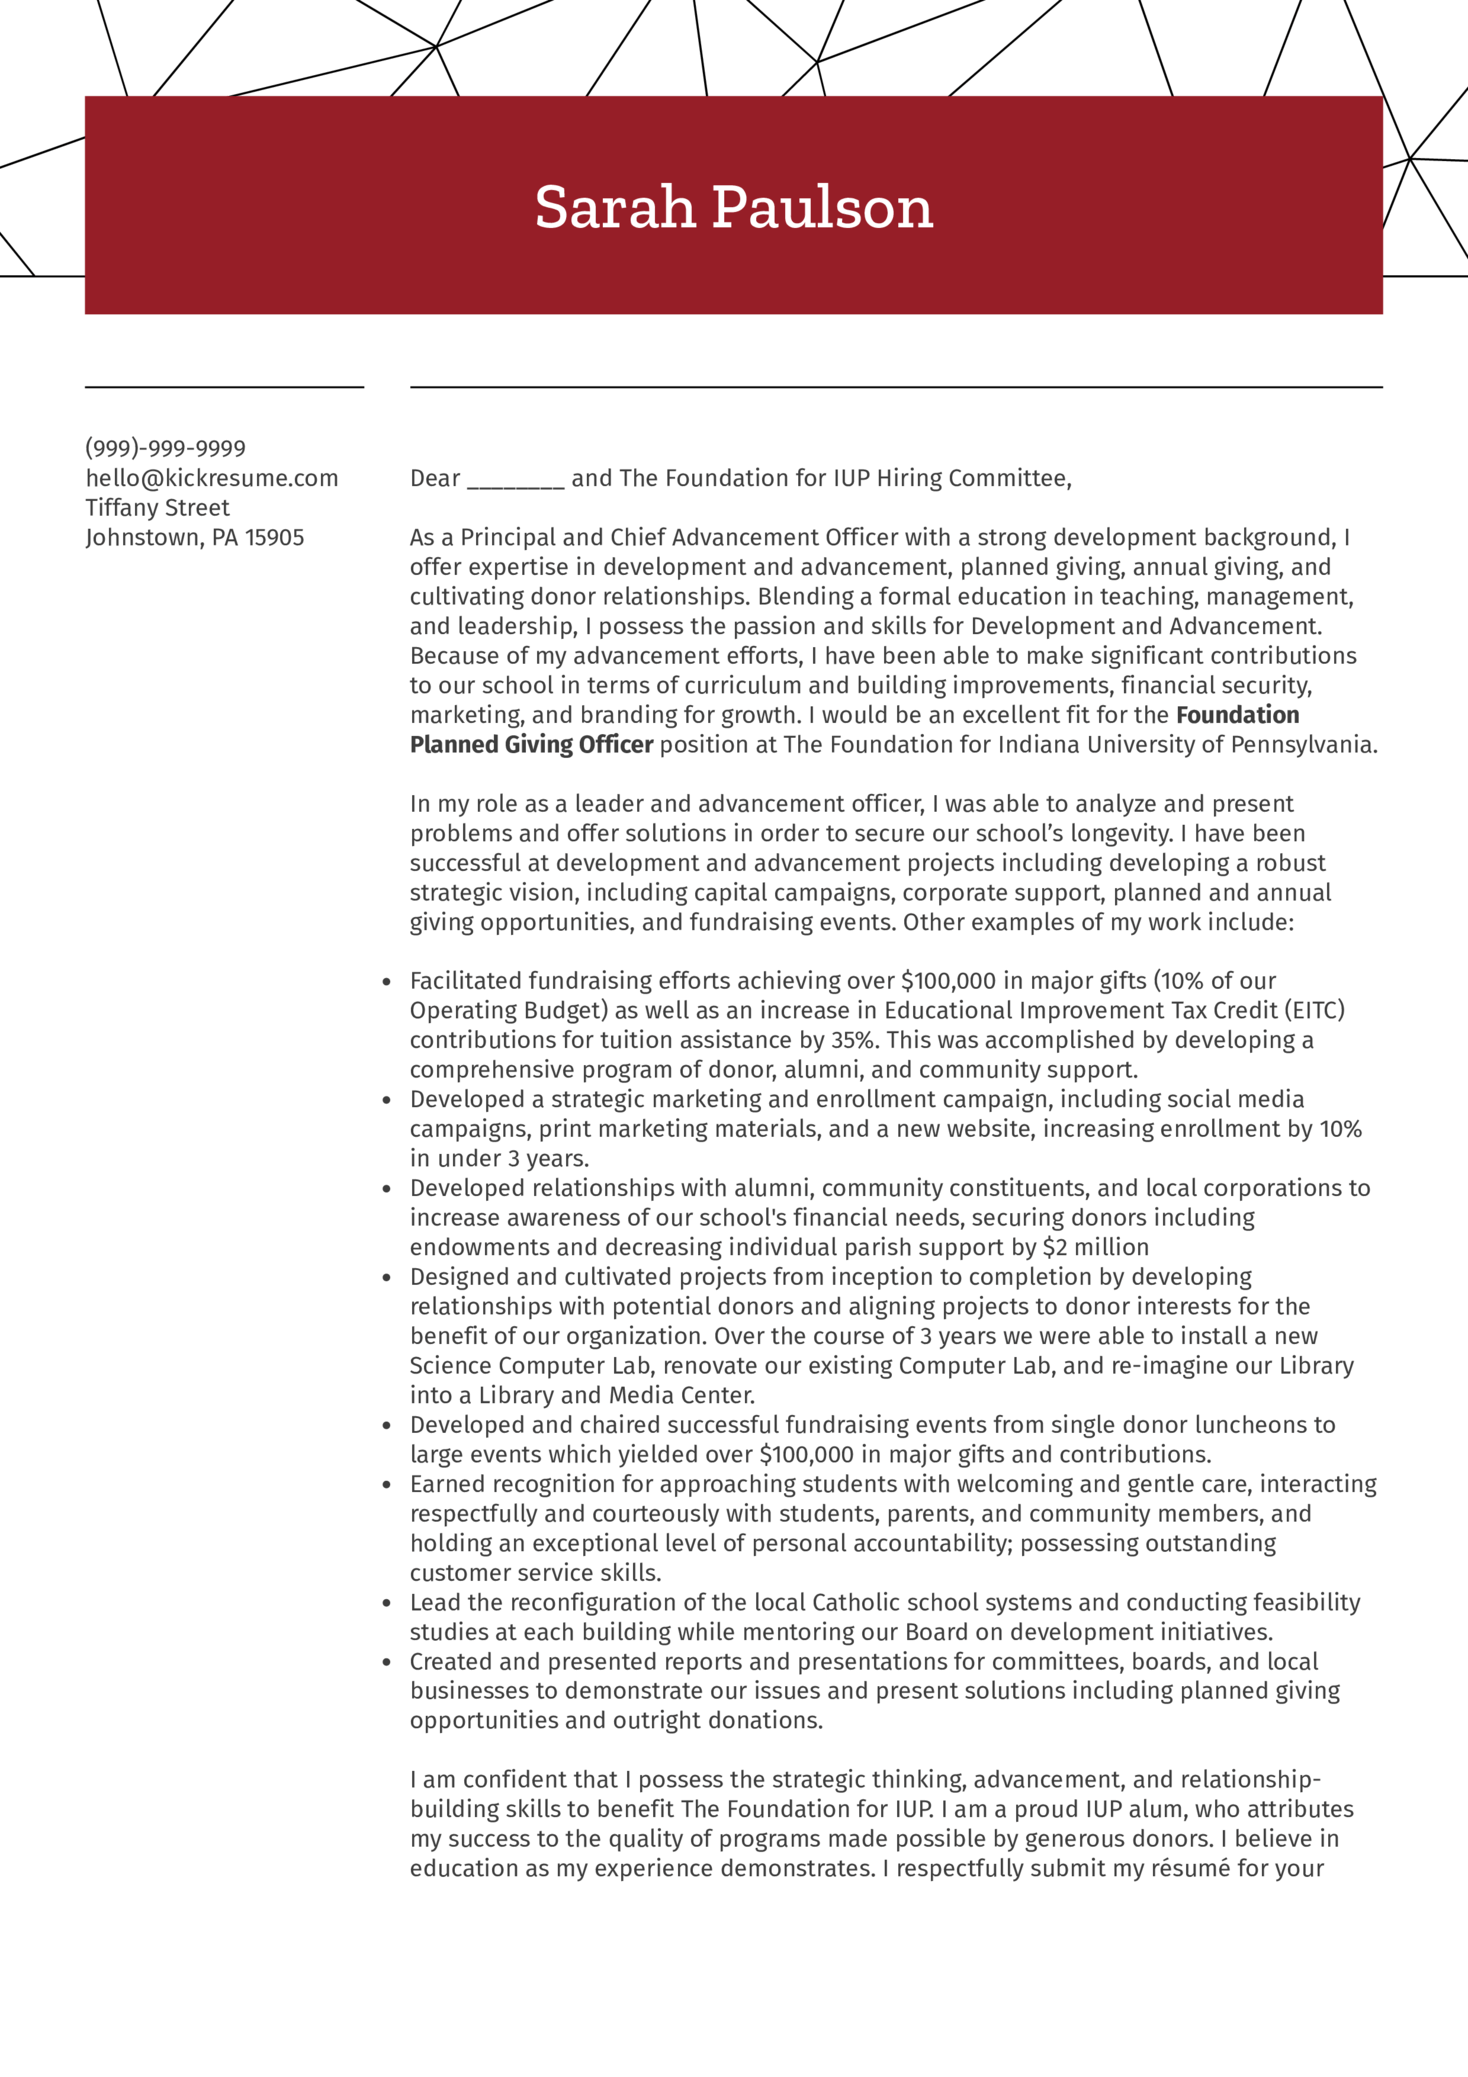 Planned Giving Officer Cover Letter Example (Parte 1)